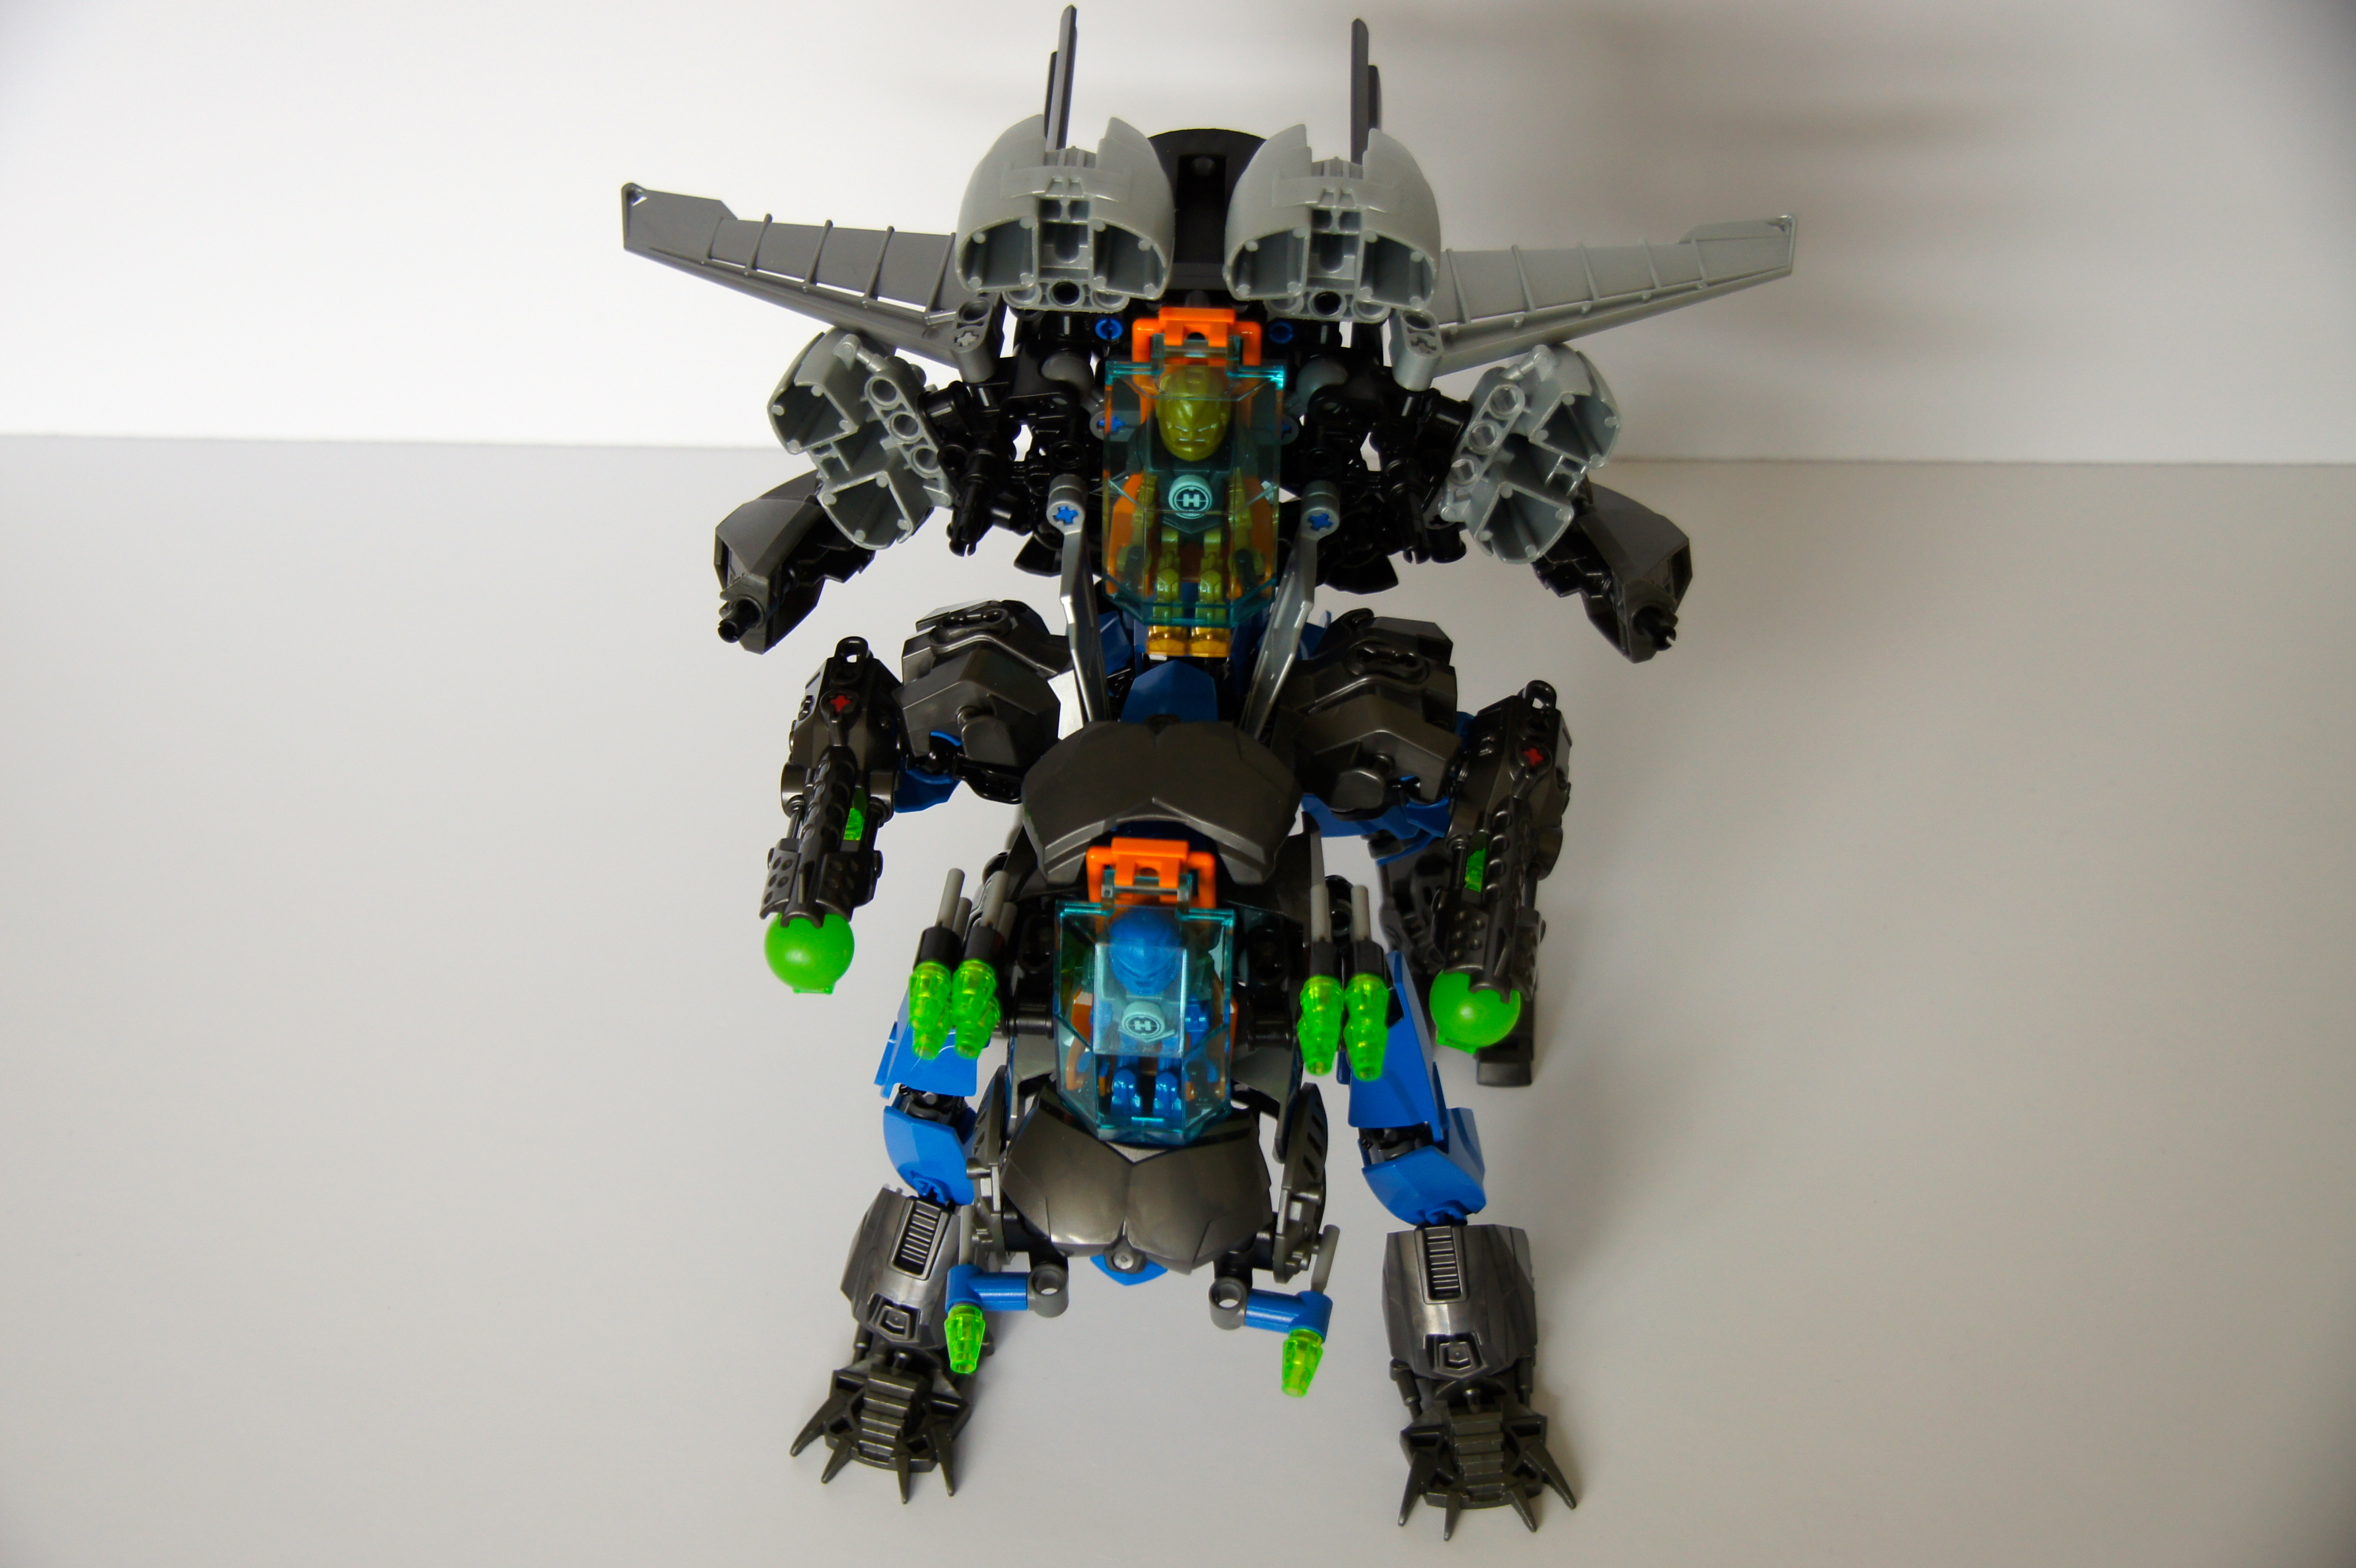 invasion from below revamps mocs bionicle based creations bzpower. Black Bedroom Furniture Sets. Home Design Ideas